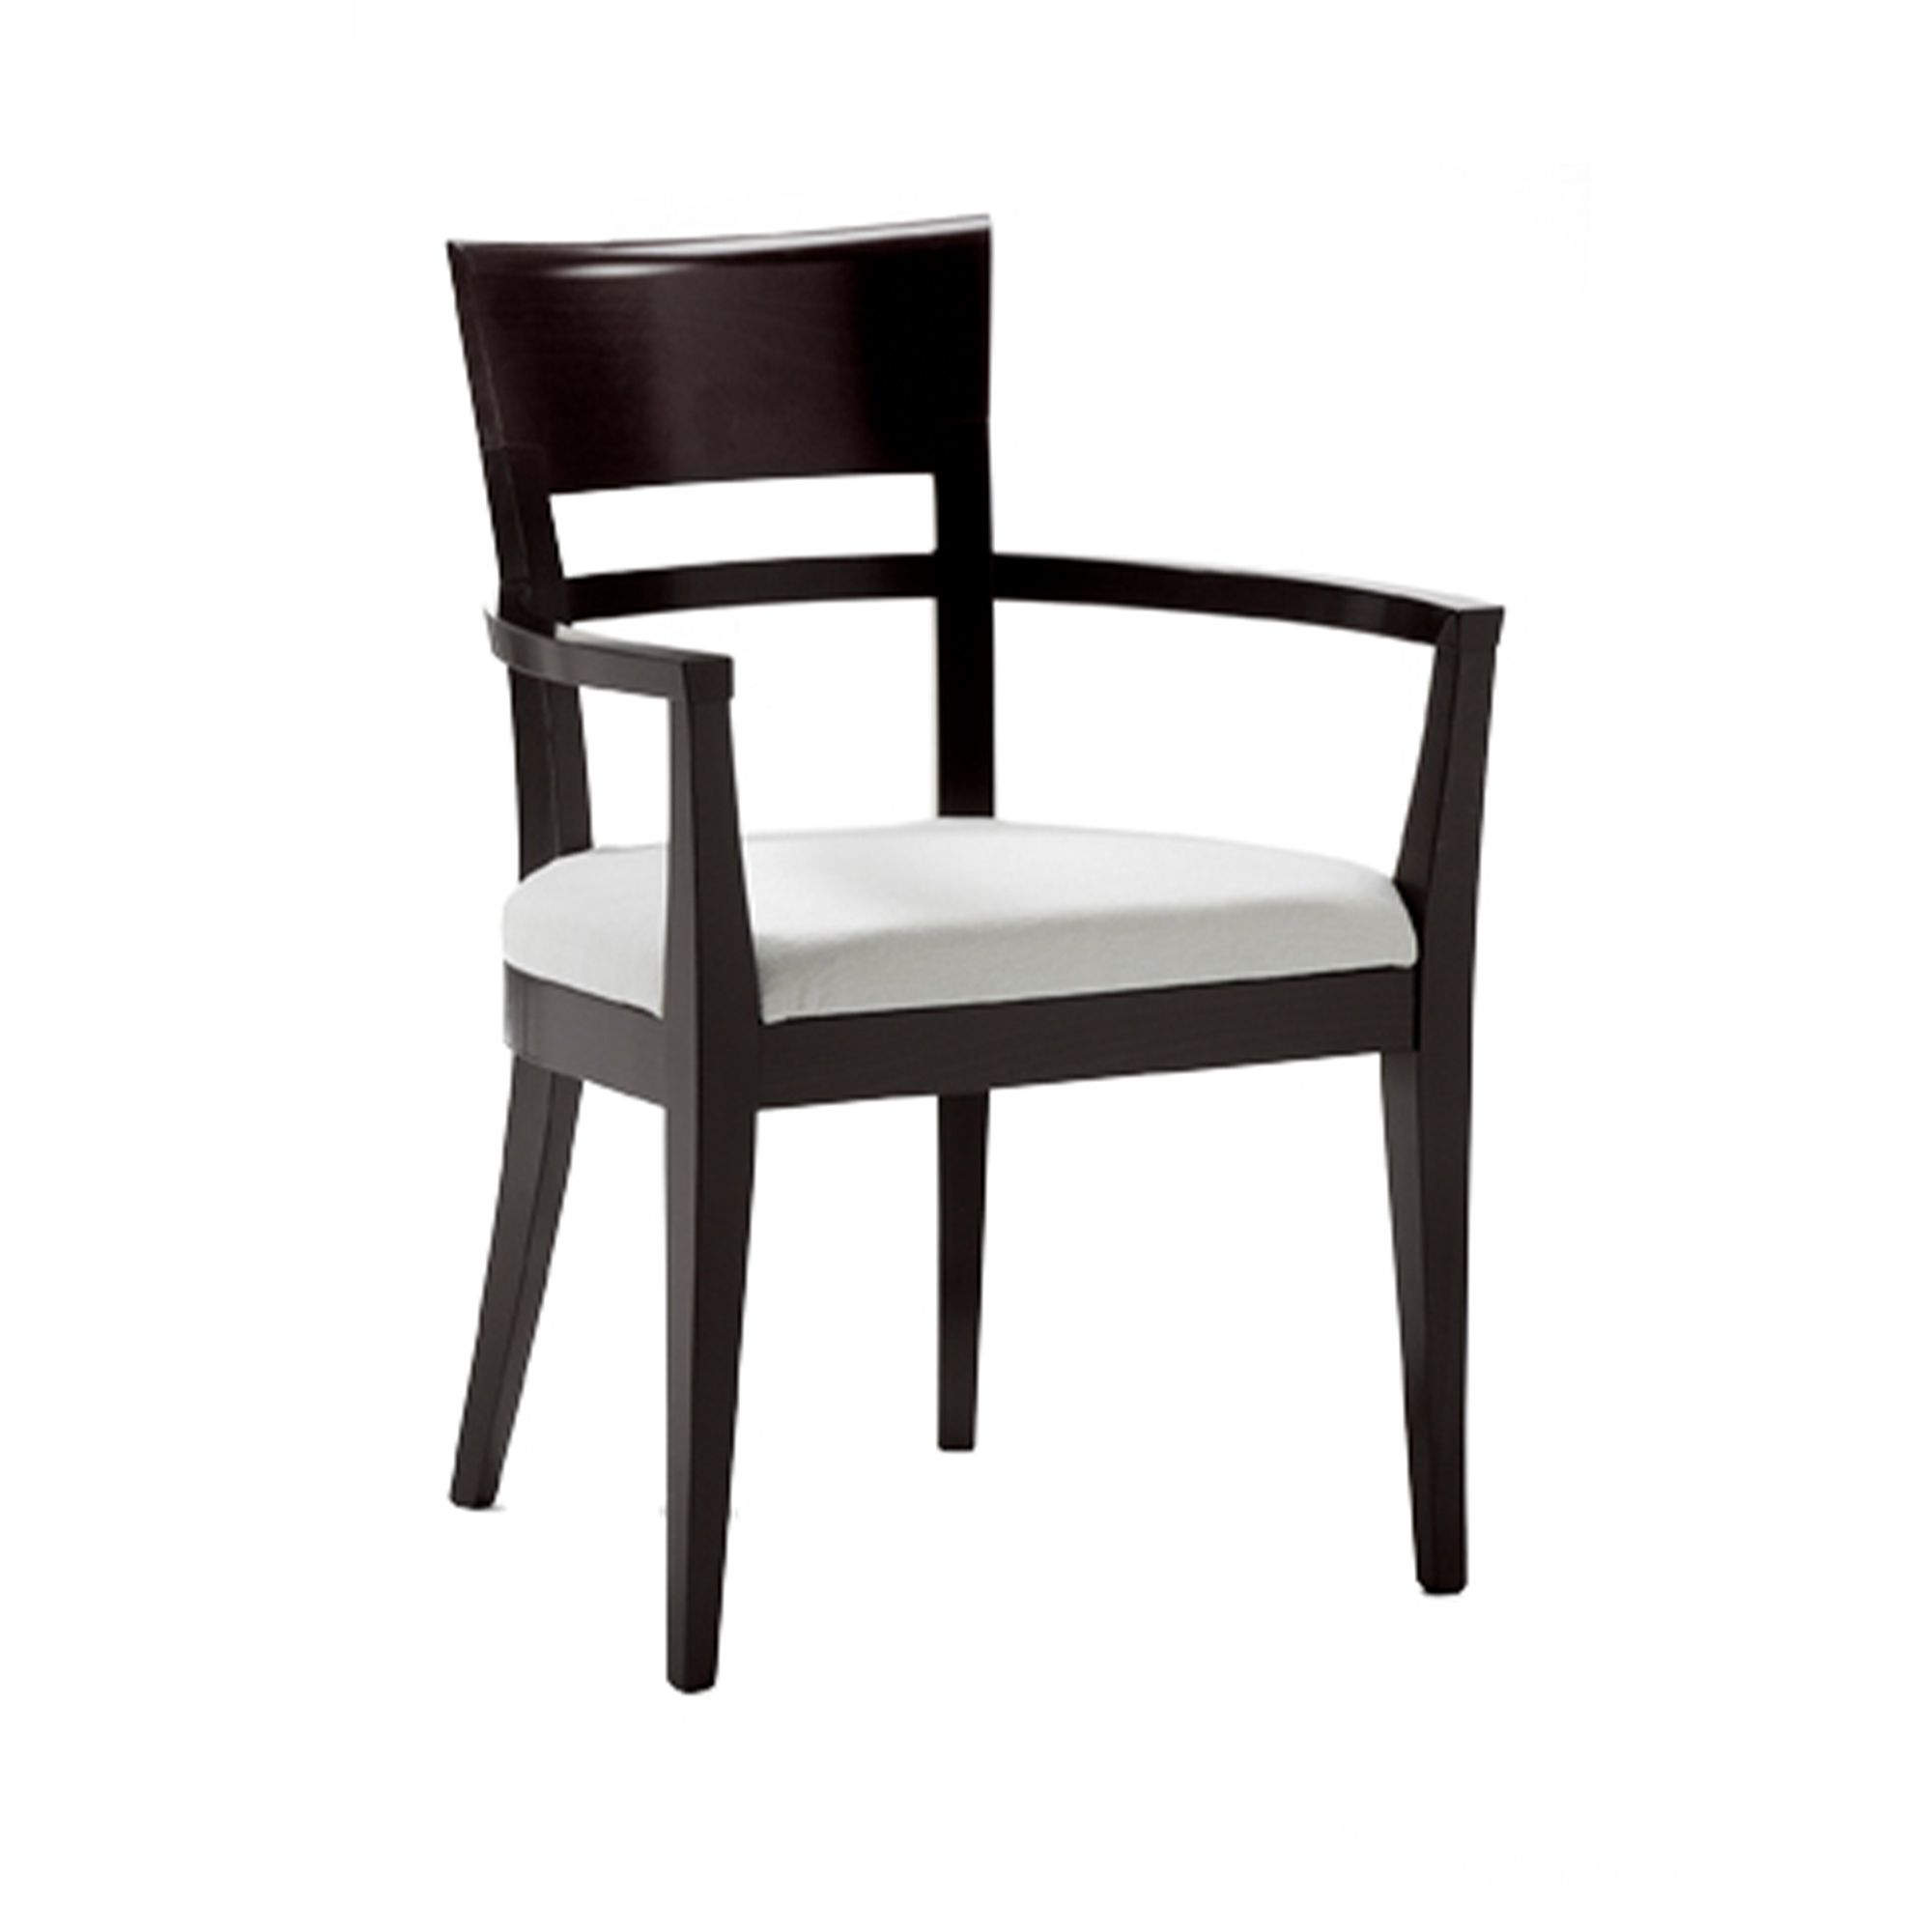 Model 946 armchair in classic style